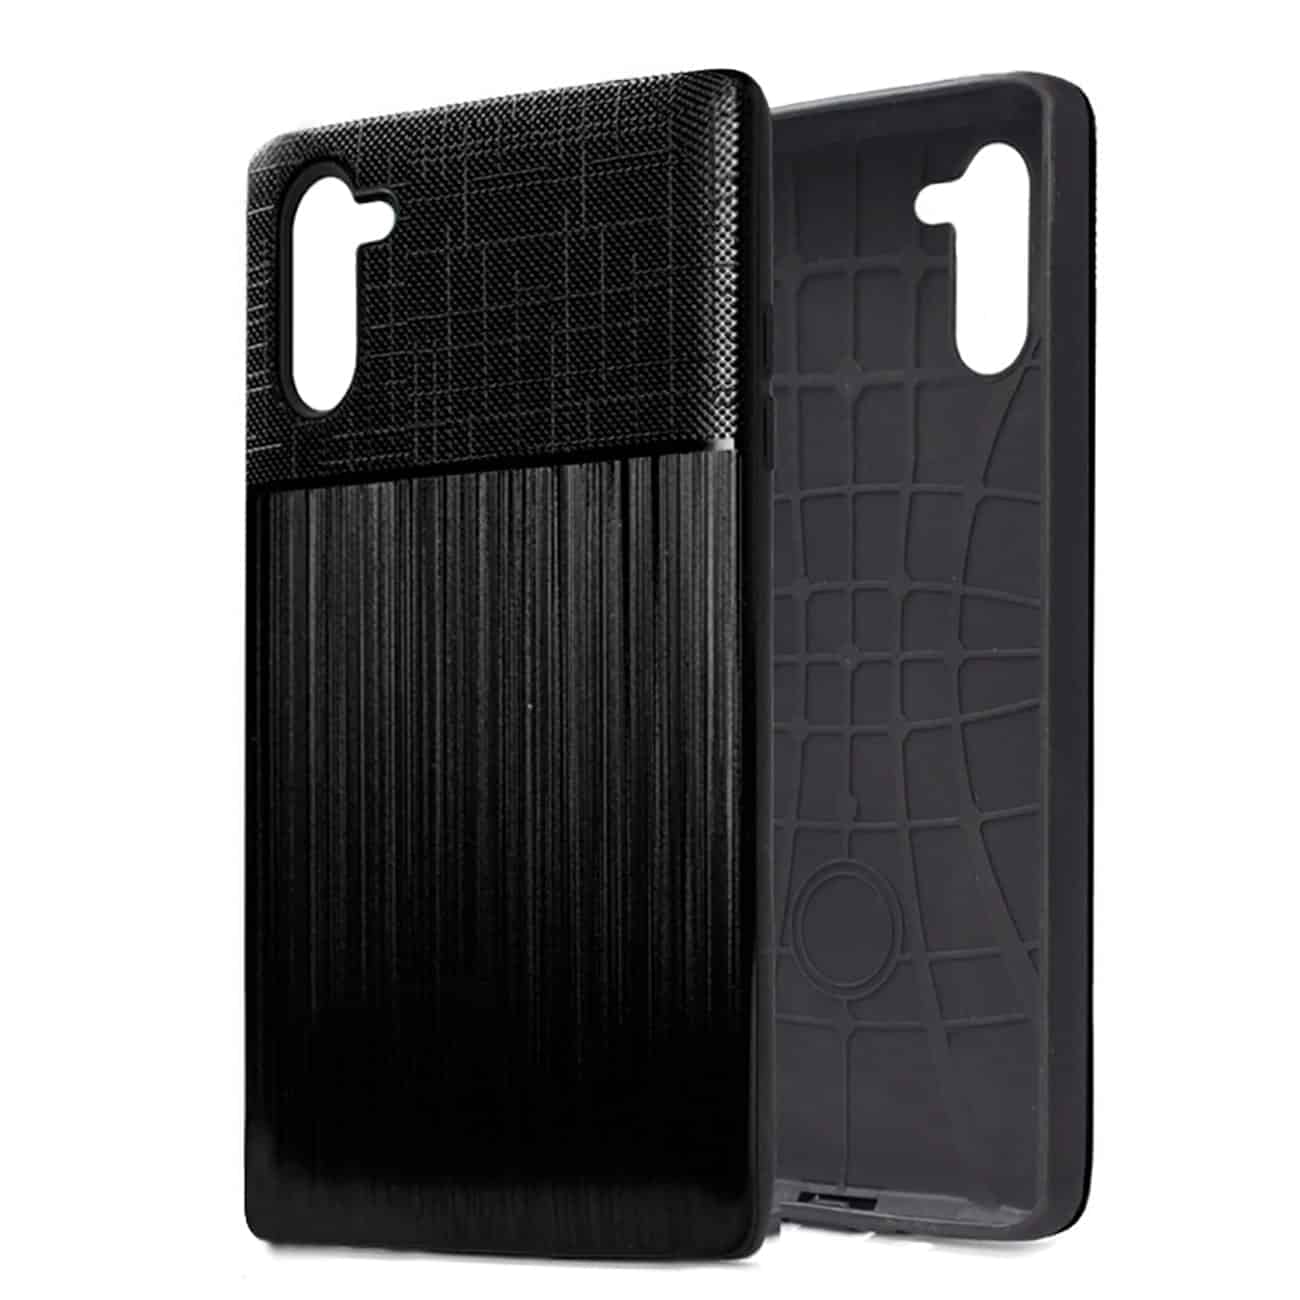 ISTIK SAMSUNG GALAXY NOTE 10 Lightweight Case In Black